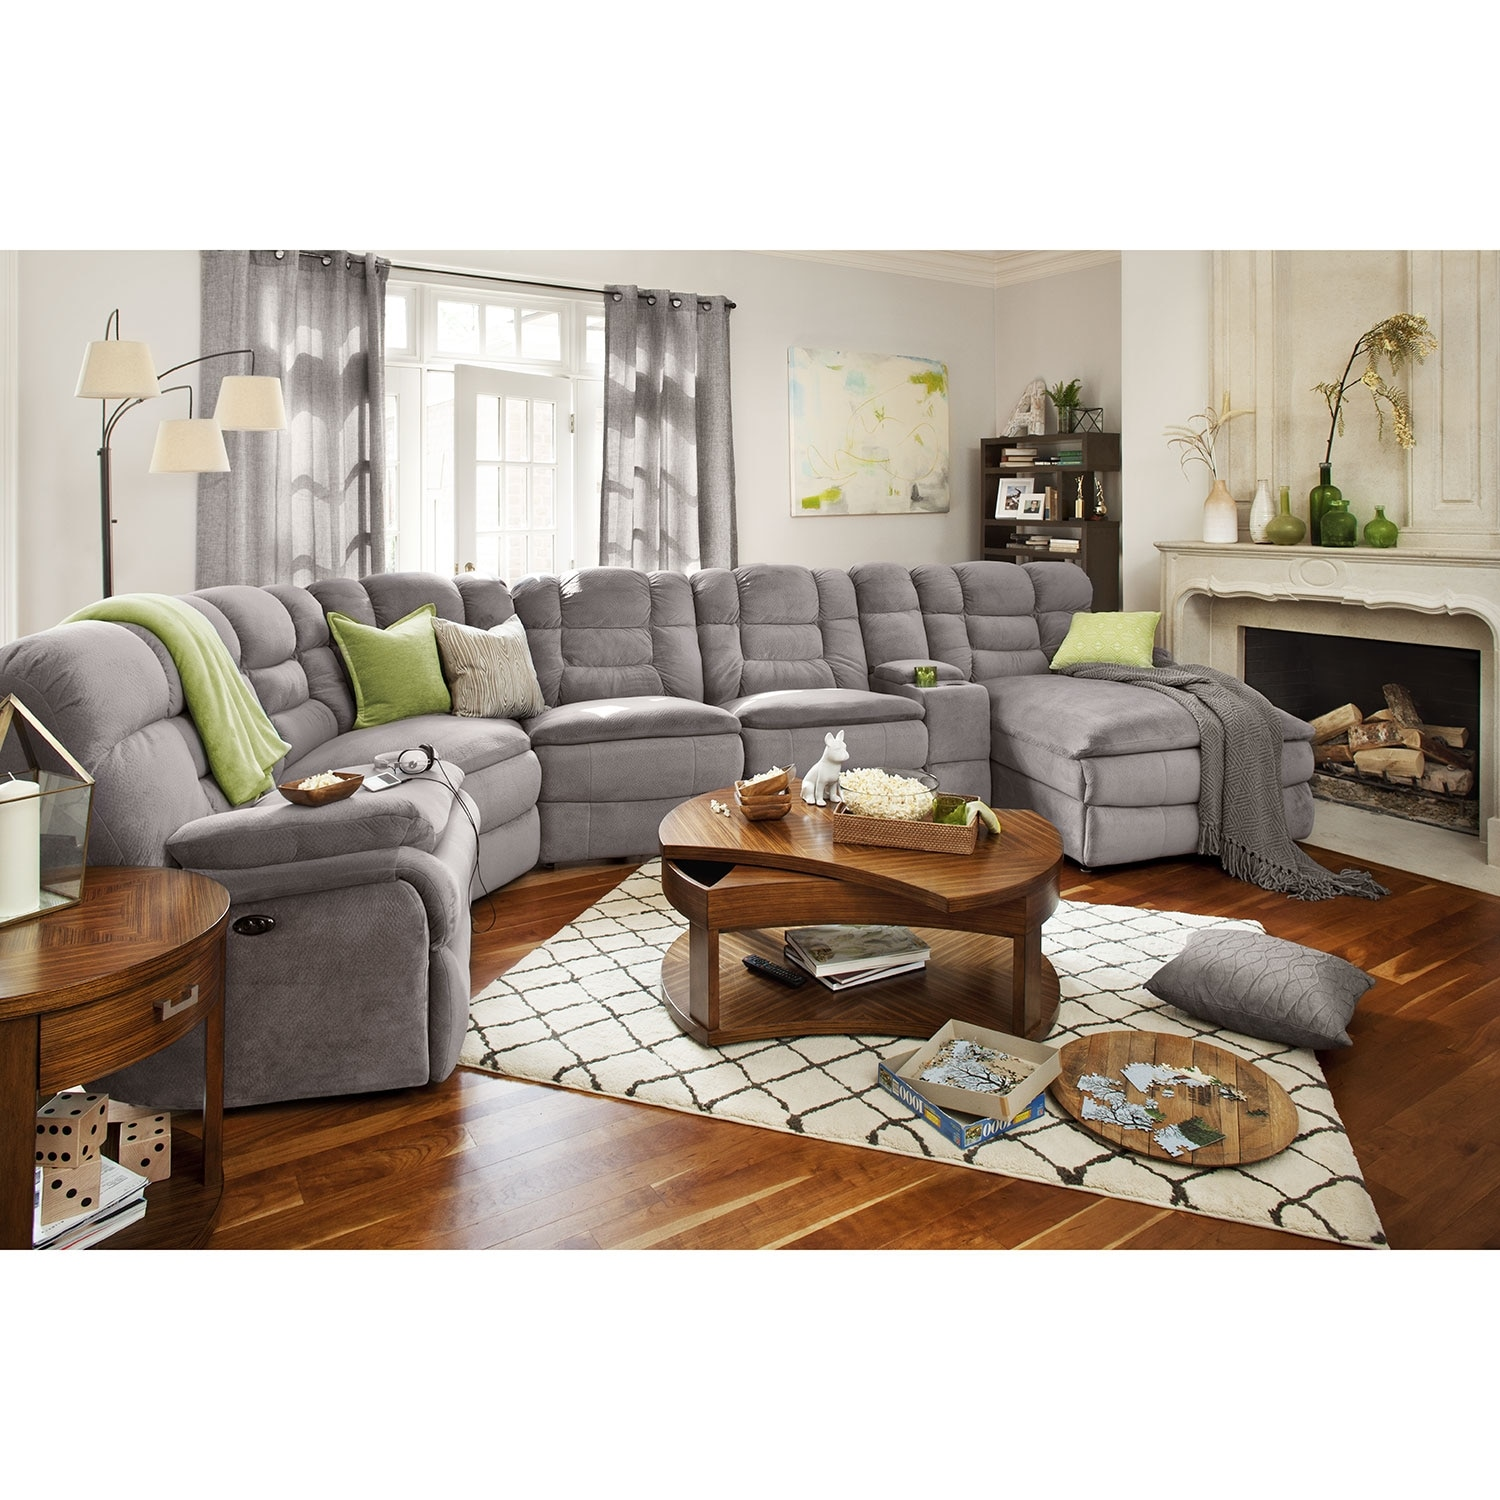 Www Furniture Com: Big Softie 6-Piece Power Reclining Sectional With Right